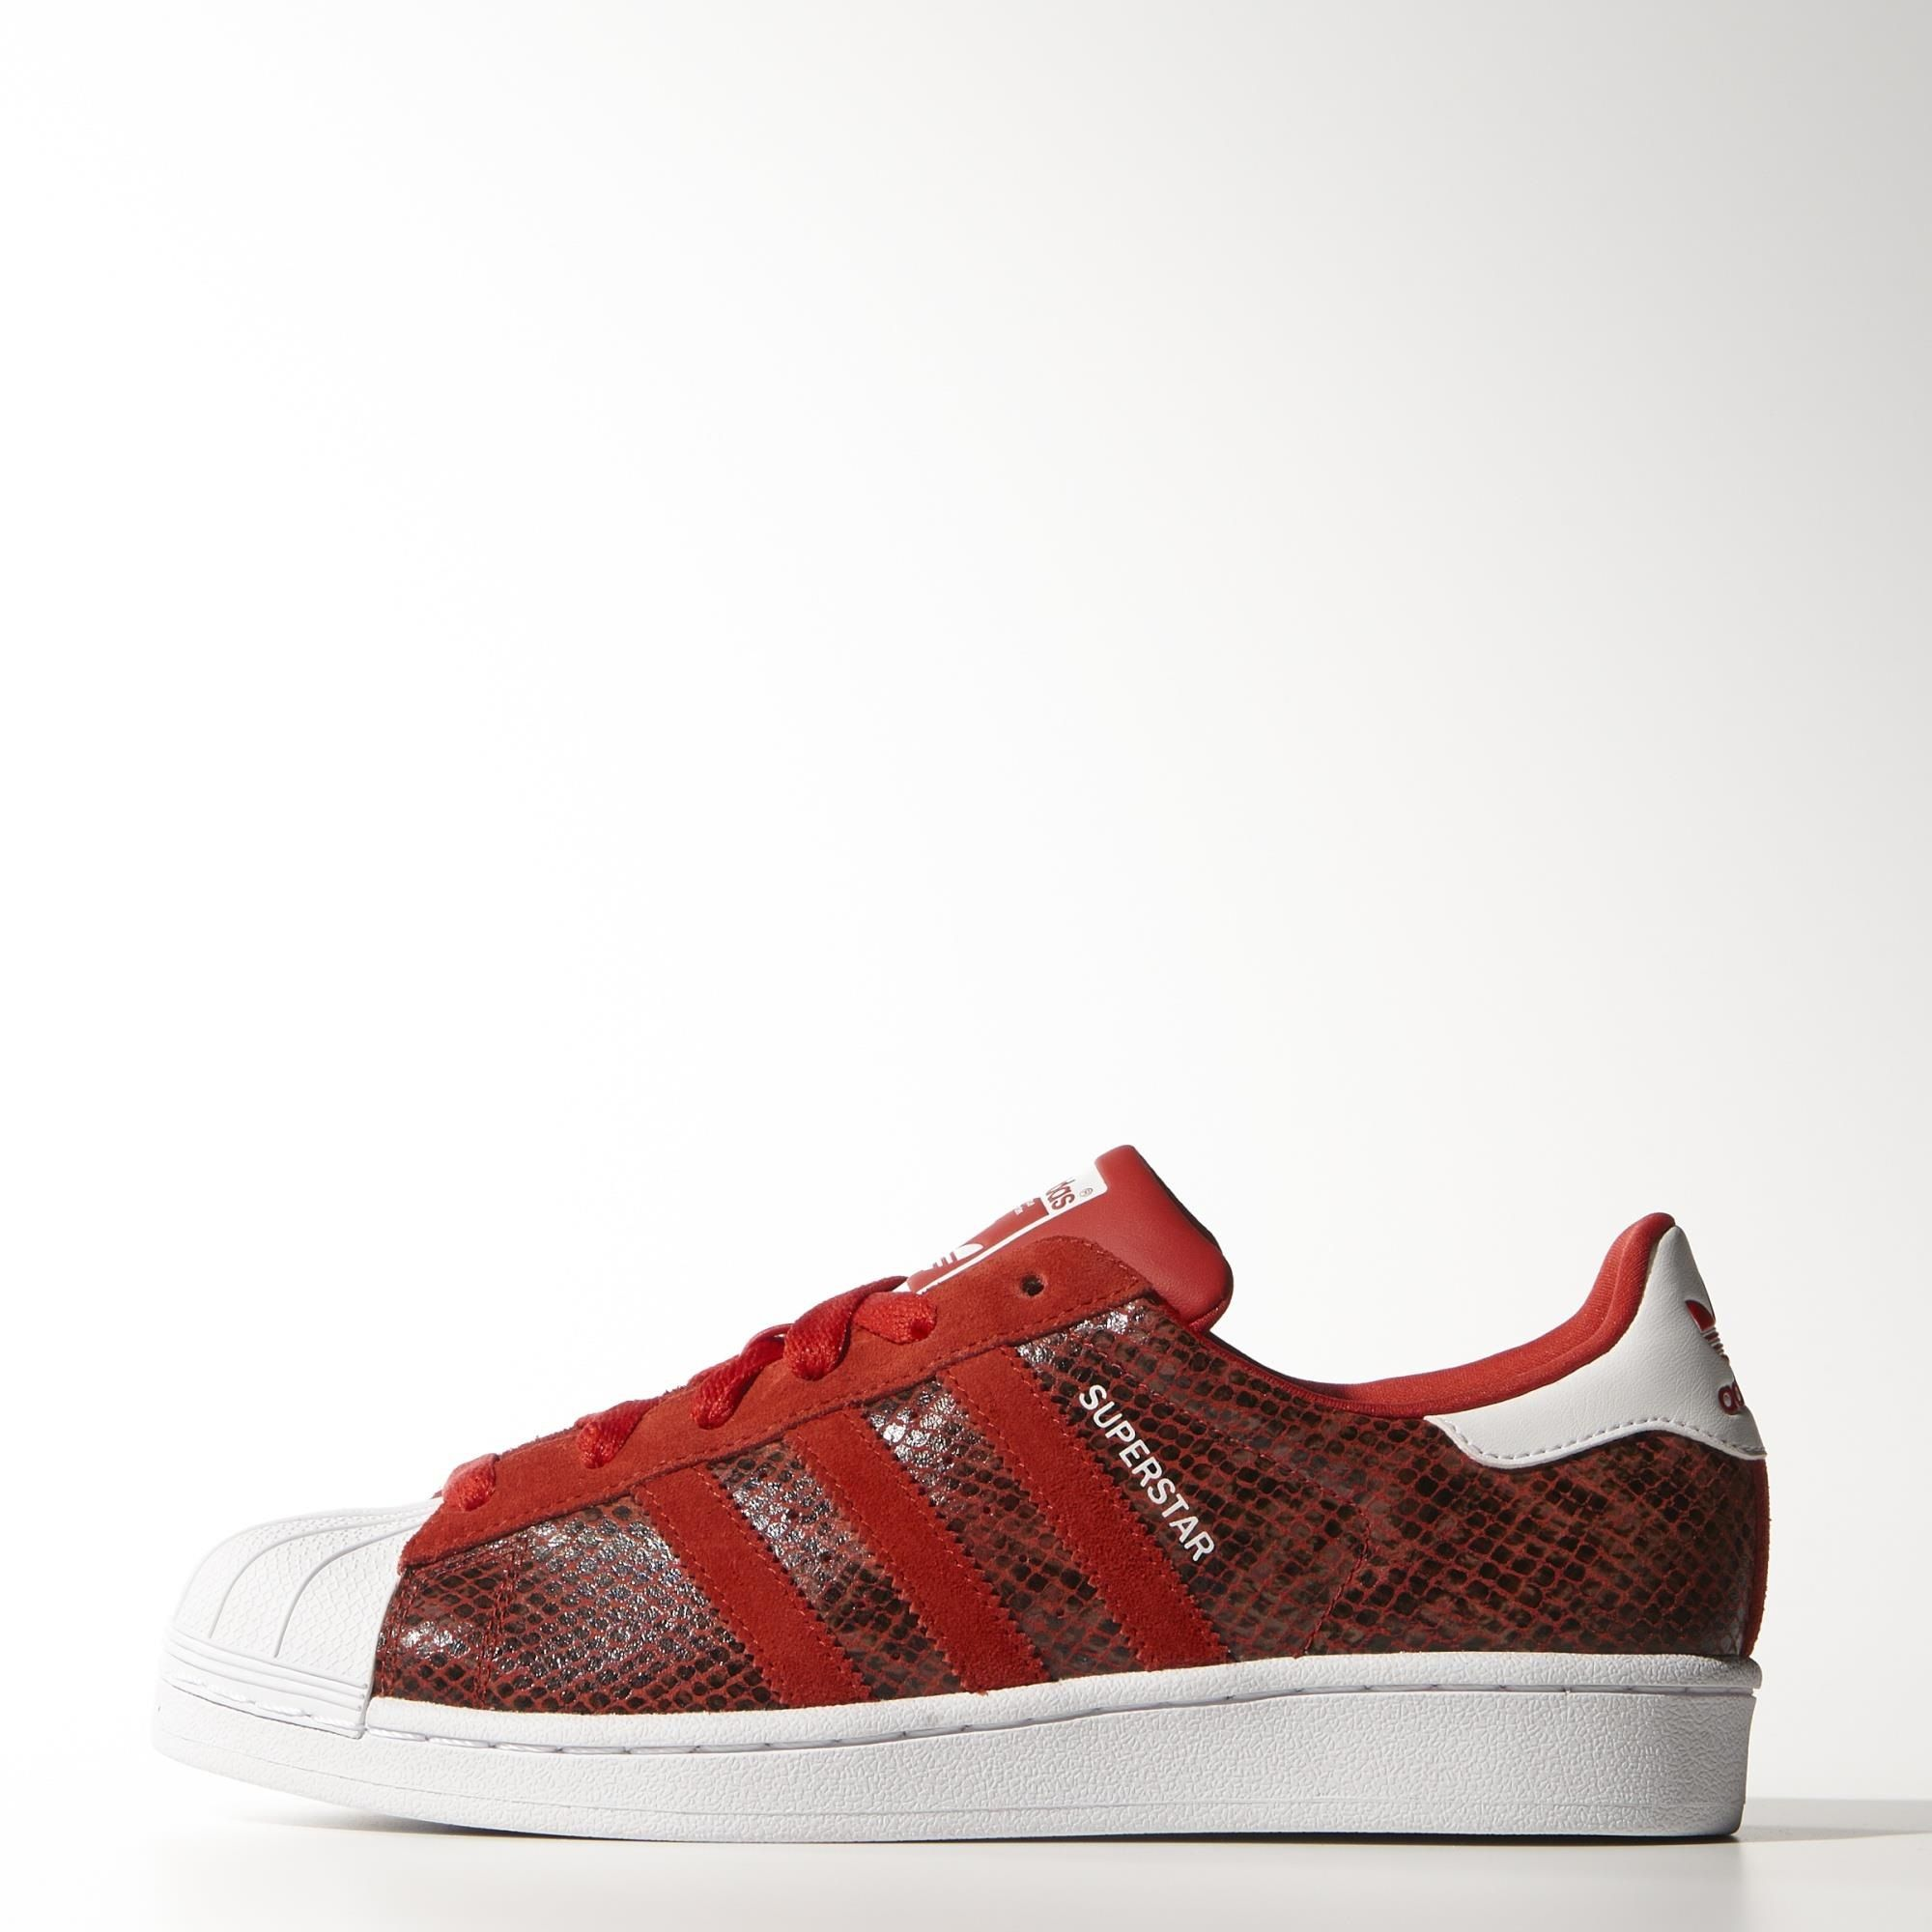 Adidas Women\u0027s Originals-Superstart Shoes $75.00 City commuter shoes, wear  and then change into